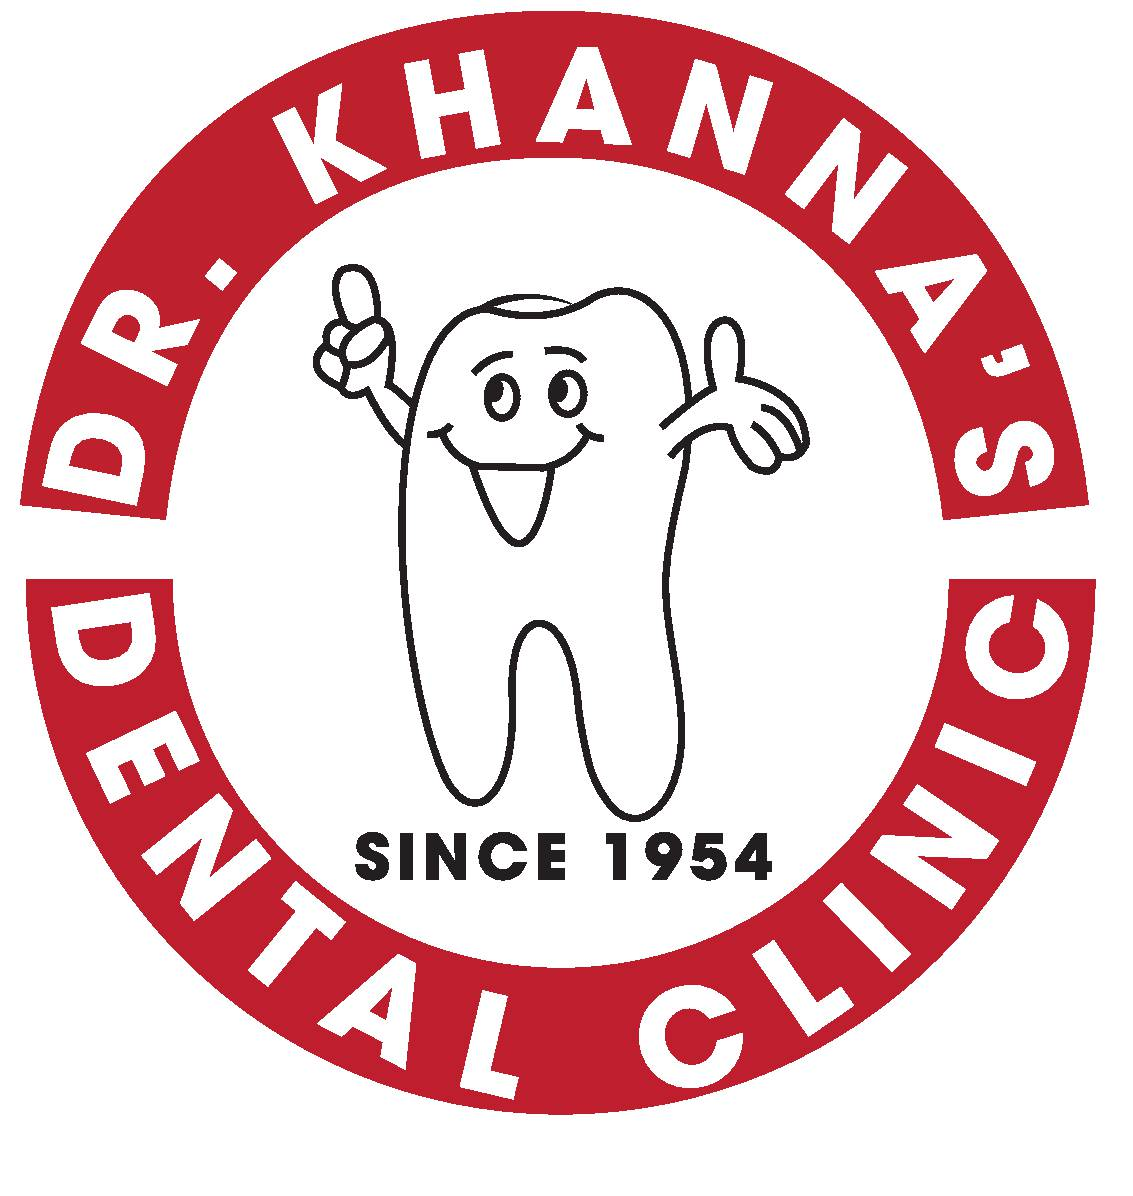 Dr. Khanna's Dental Clinic